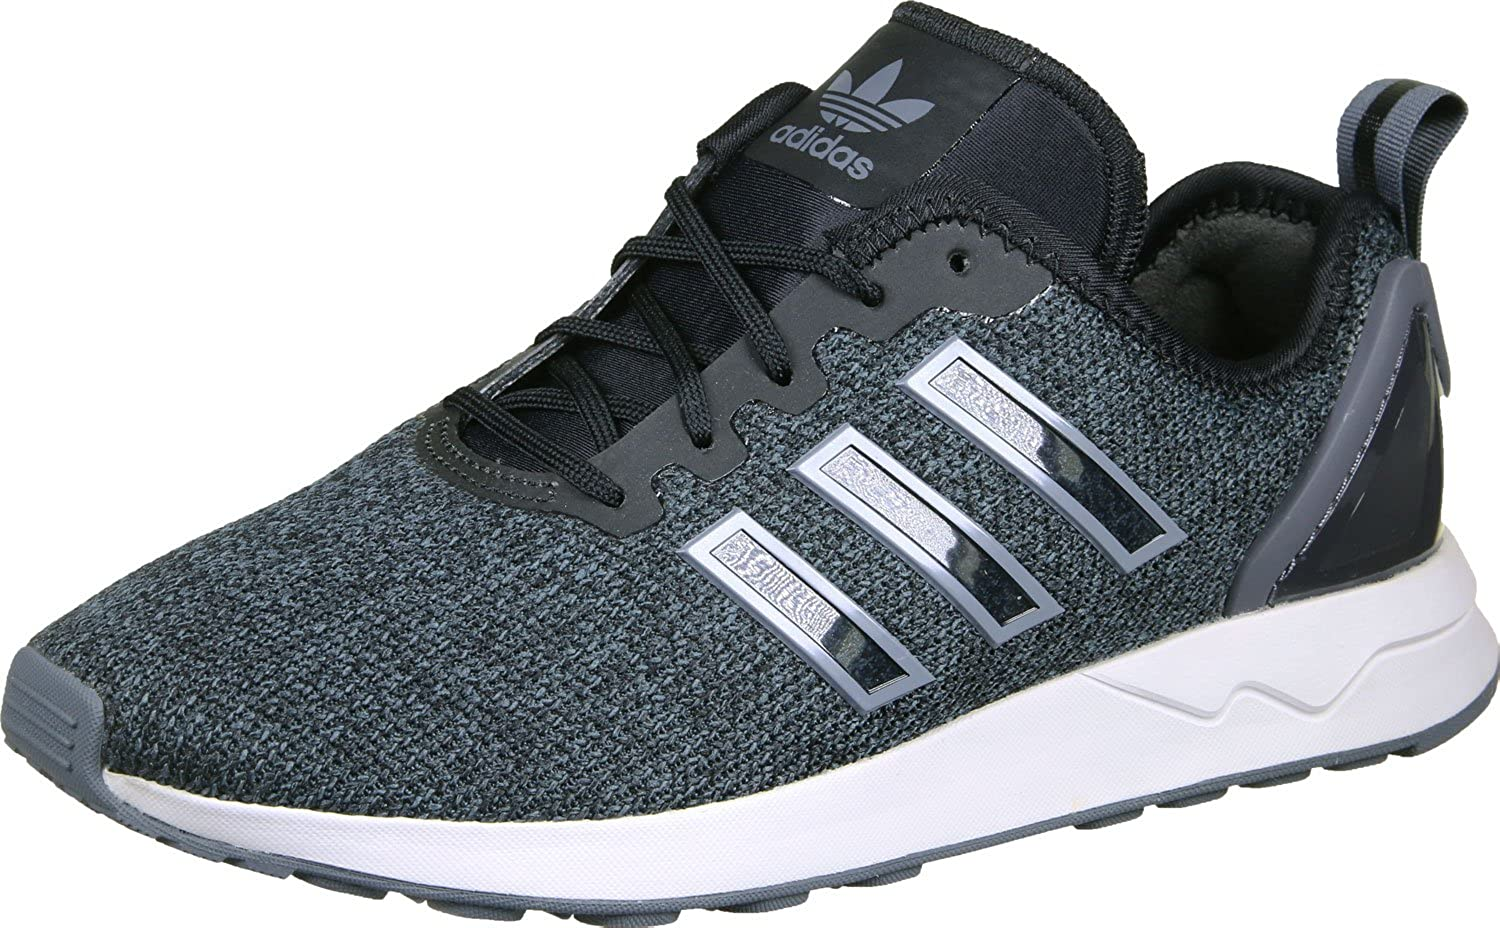 Adidas Men's Zx Flux Adv Training Running shoes